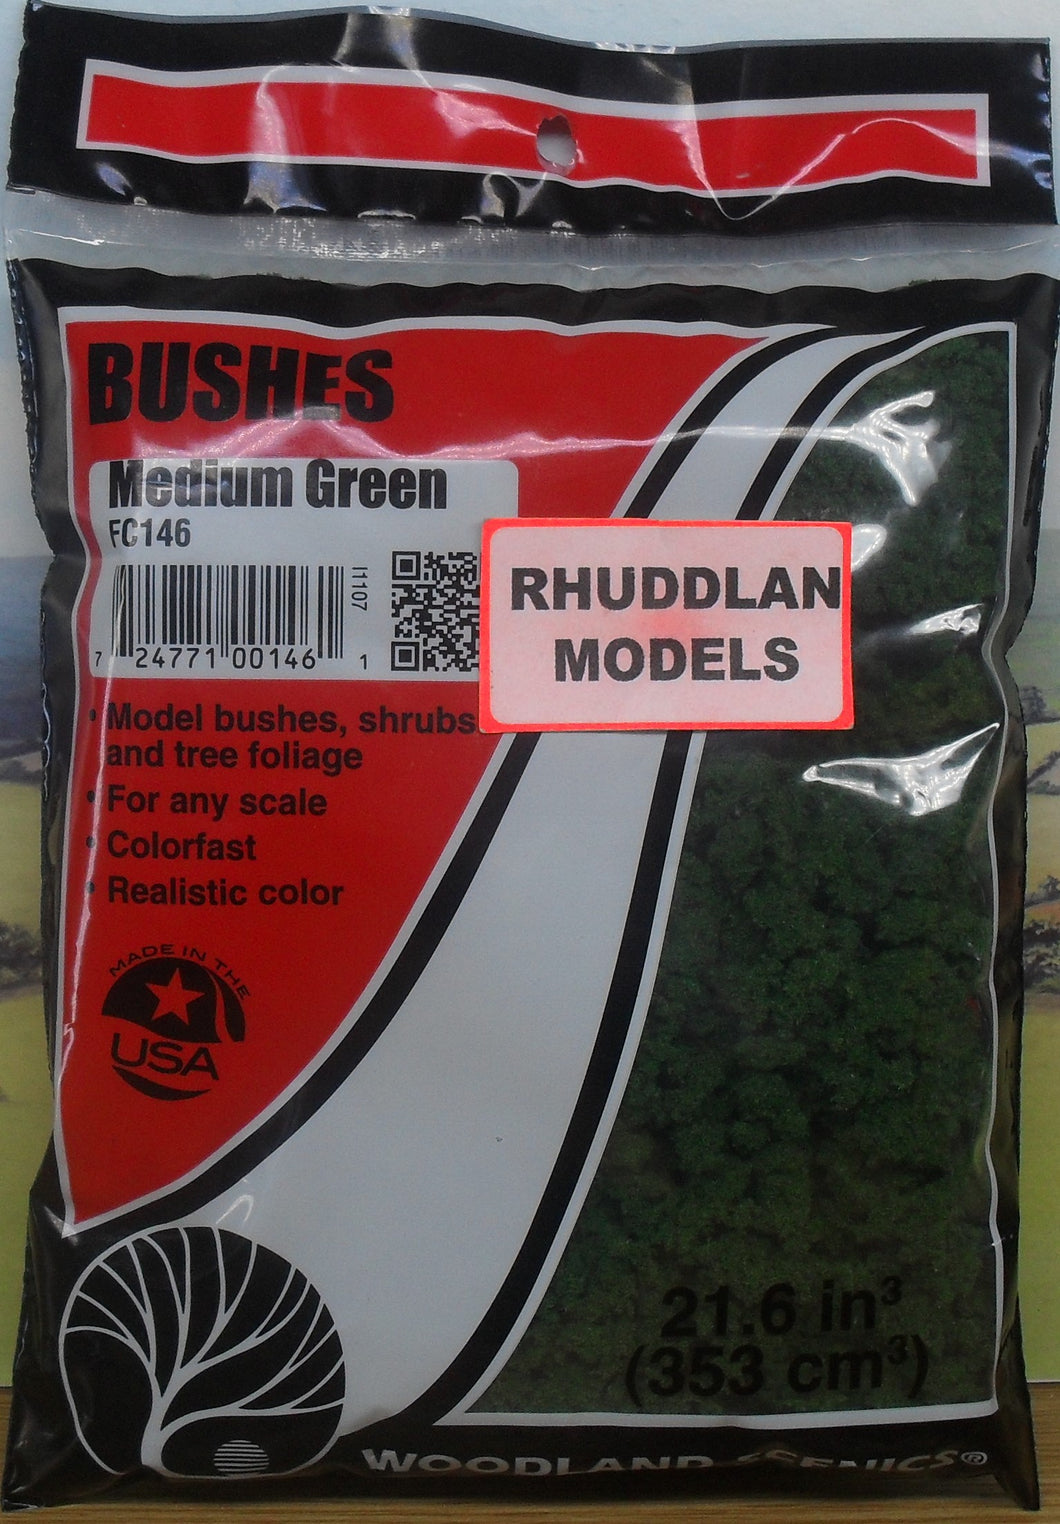 WOODLAND SCENICS BUSHES FC146 MEDIUM GREEN - (PRICE INCLUDES DELIVERY)